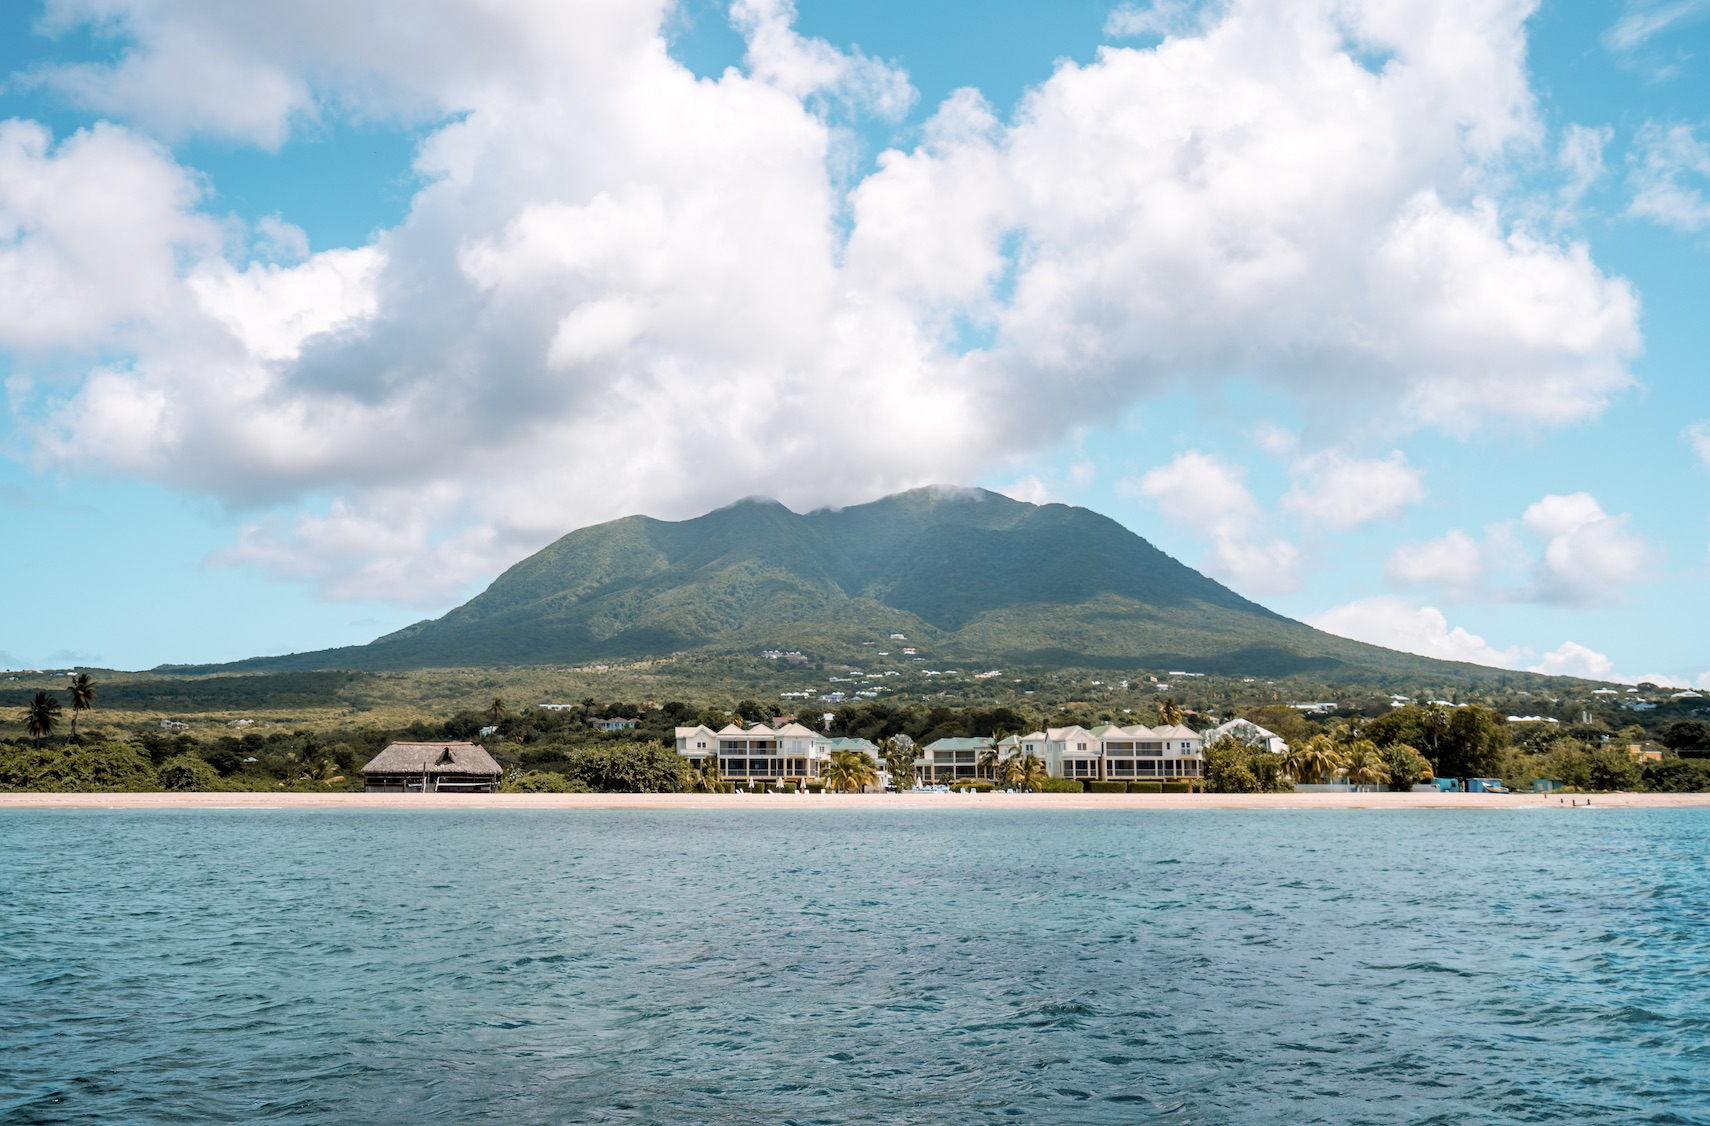 The view of Nevis from the Caribbean Sea with Mt. Nevis in the backdrop (photo provided